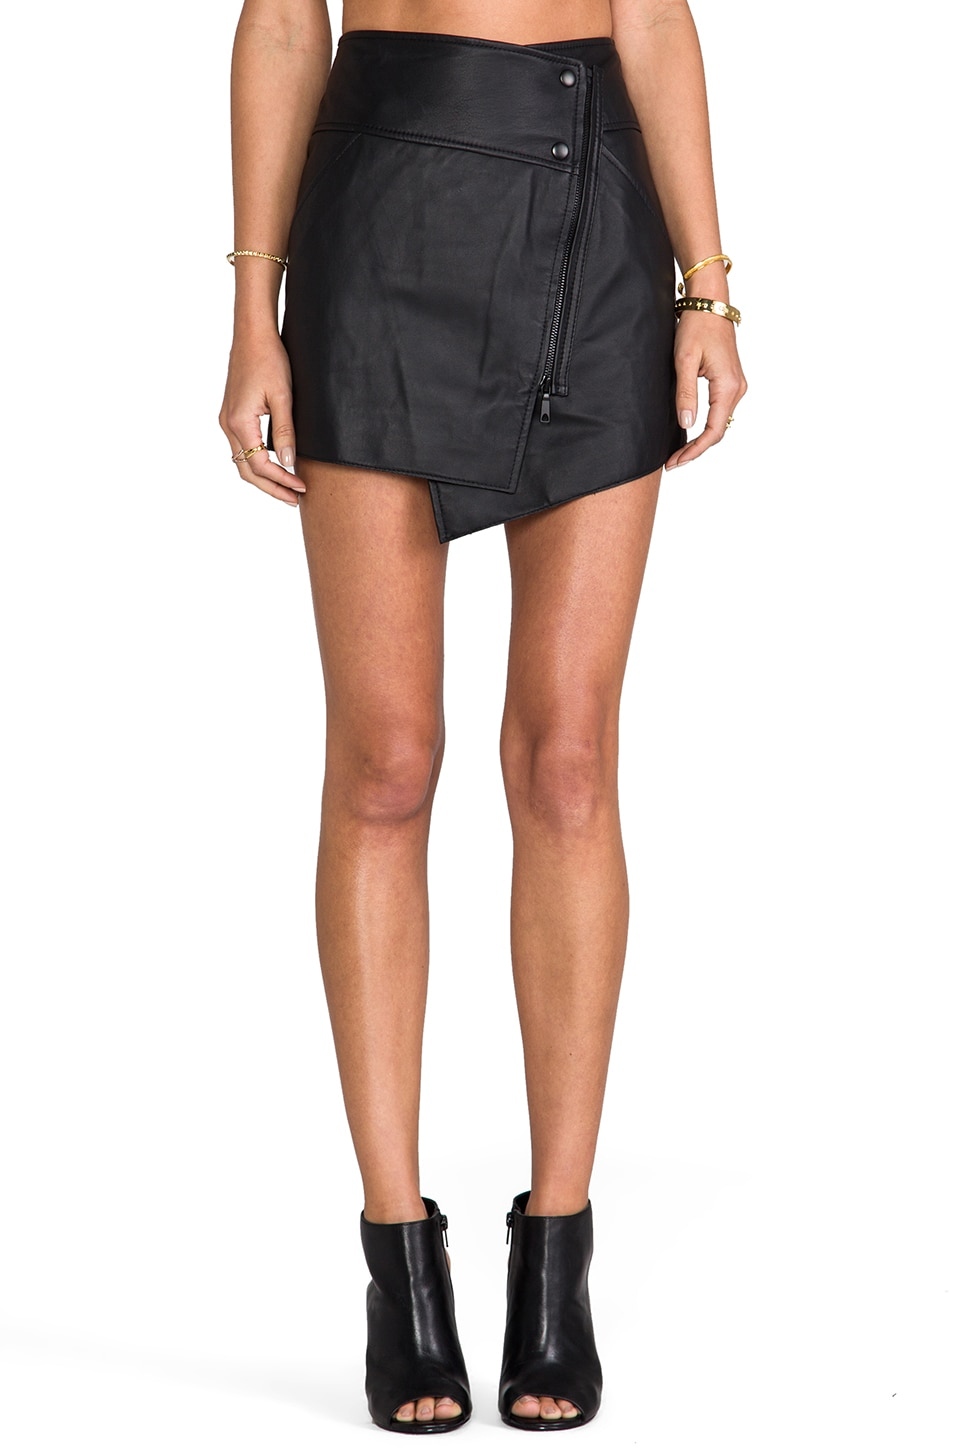 Rachel Zoe Bowery Leather Asymmetrical Skirt in Black